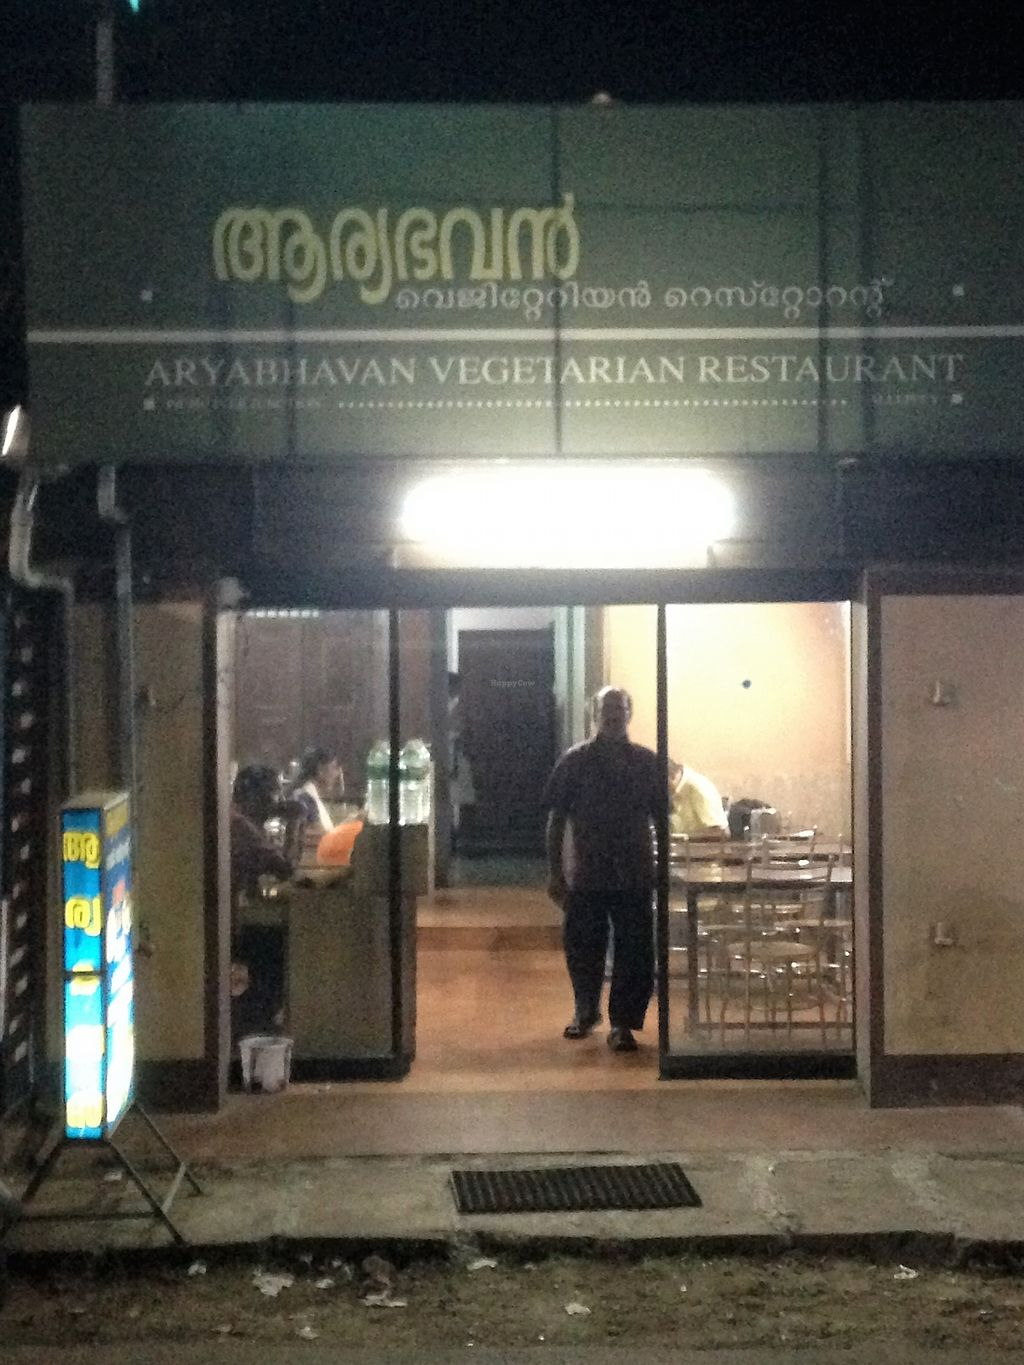 "Photo of Arya Bhavan Vegetarian Restaurant  by <a href=""/members/profile/LobkeBrasseur"">LobkeBrasseur</a> <br/>Front of restaurant  <br/> April 13, 2018  - <a href='/contact/abuse/image/117313/384962'>Report</a>"